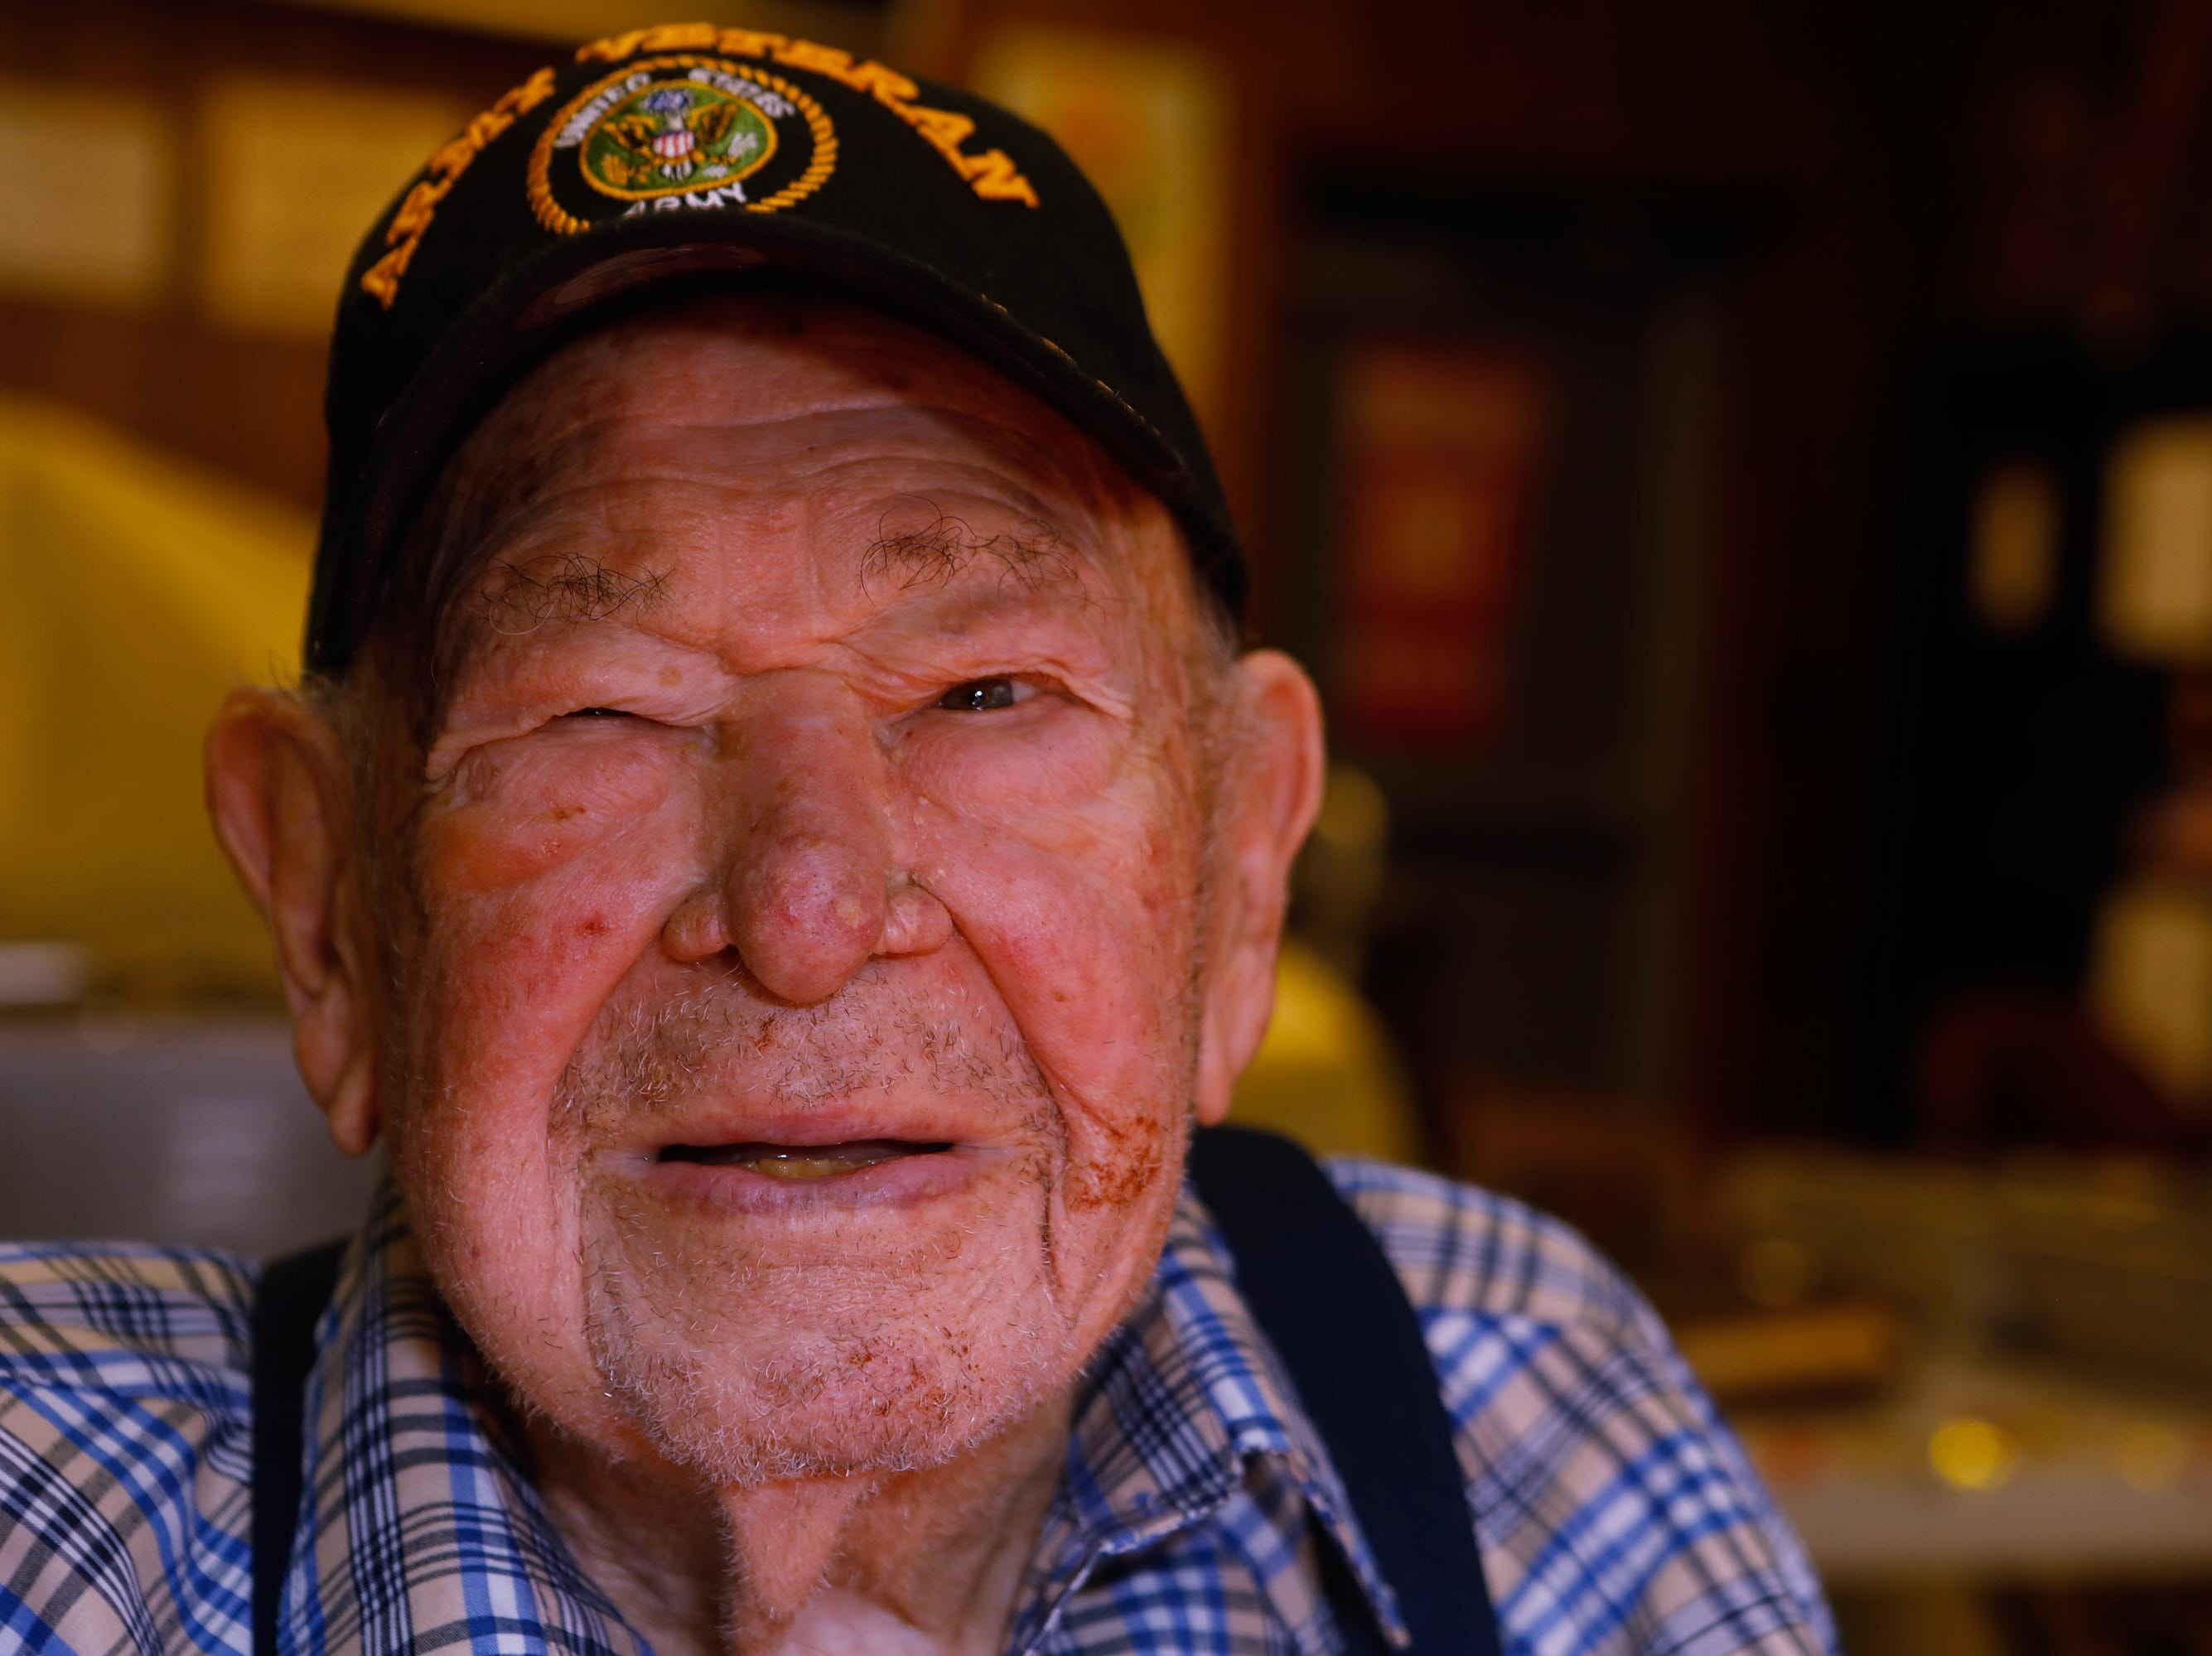 VFW honors 100-year-old WWII veteran at Thanksgiving feast